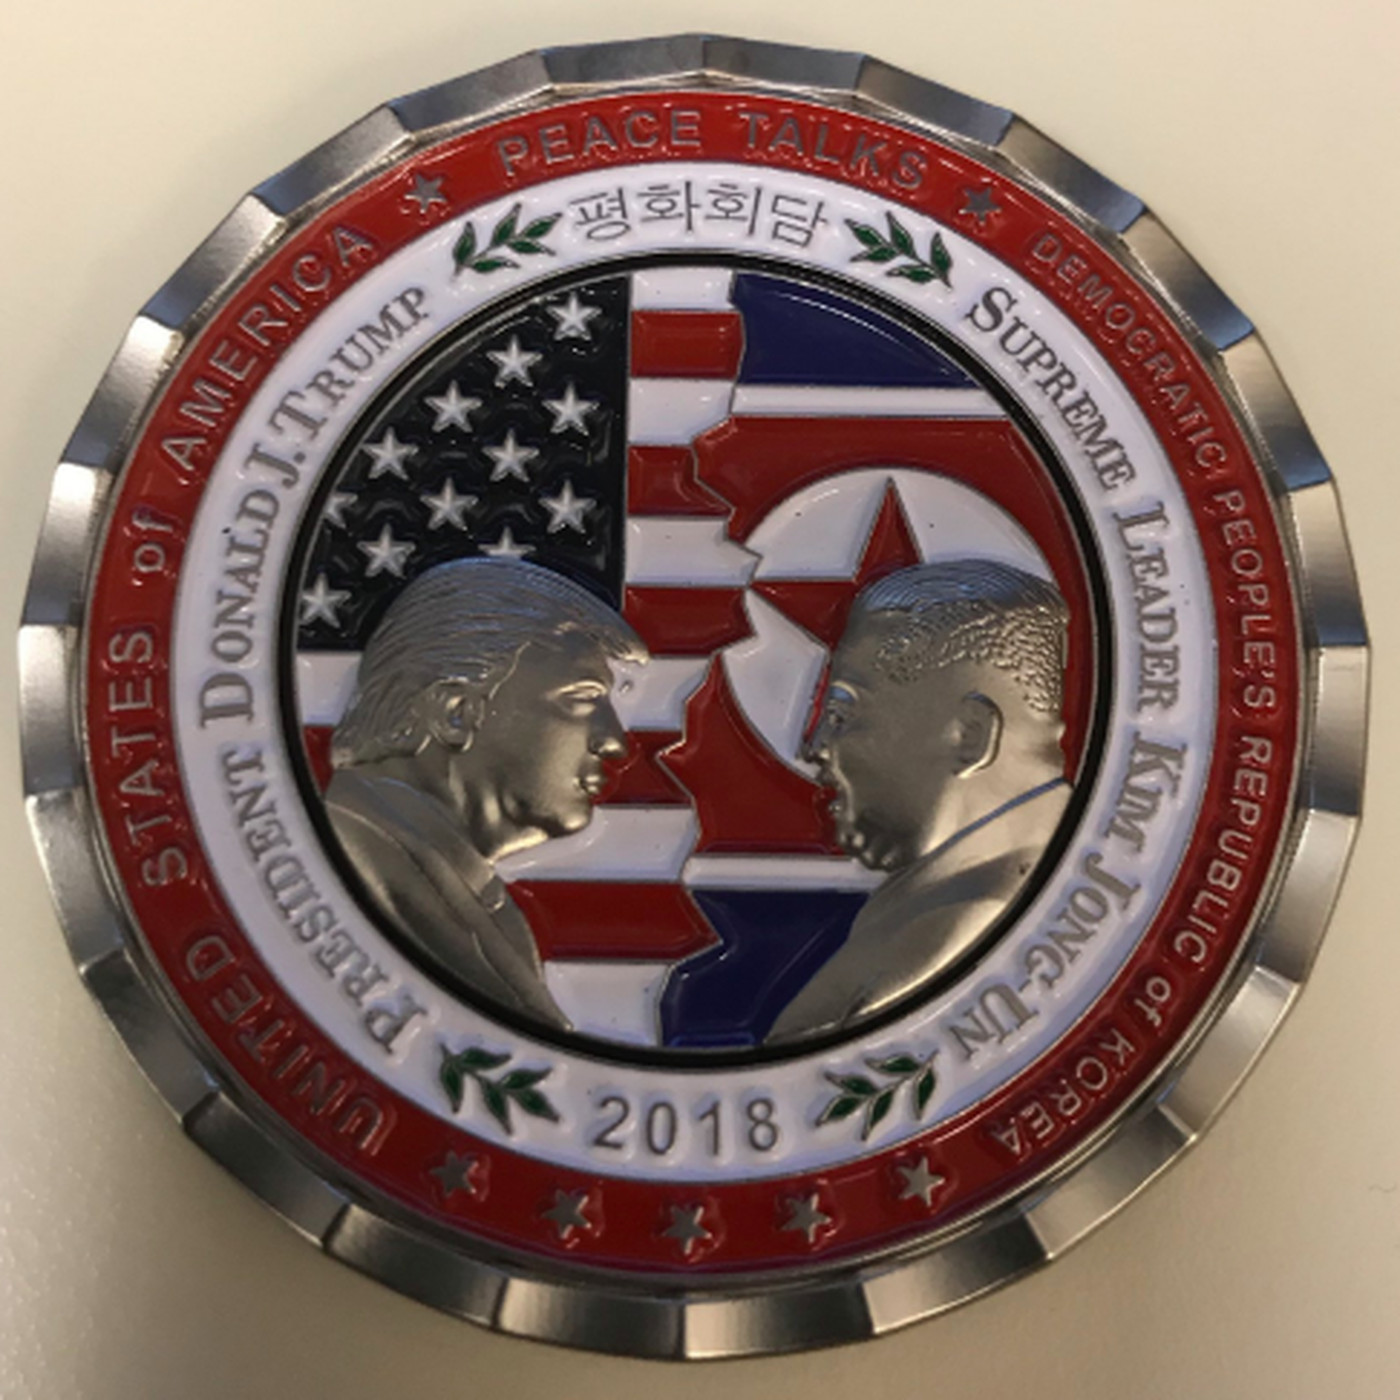 Trump-North Korea summit: the US made a coin, for some